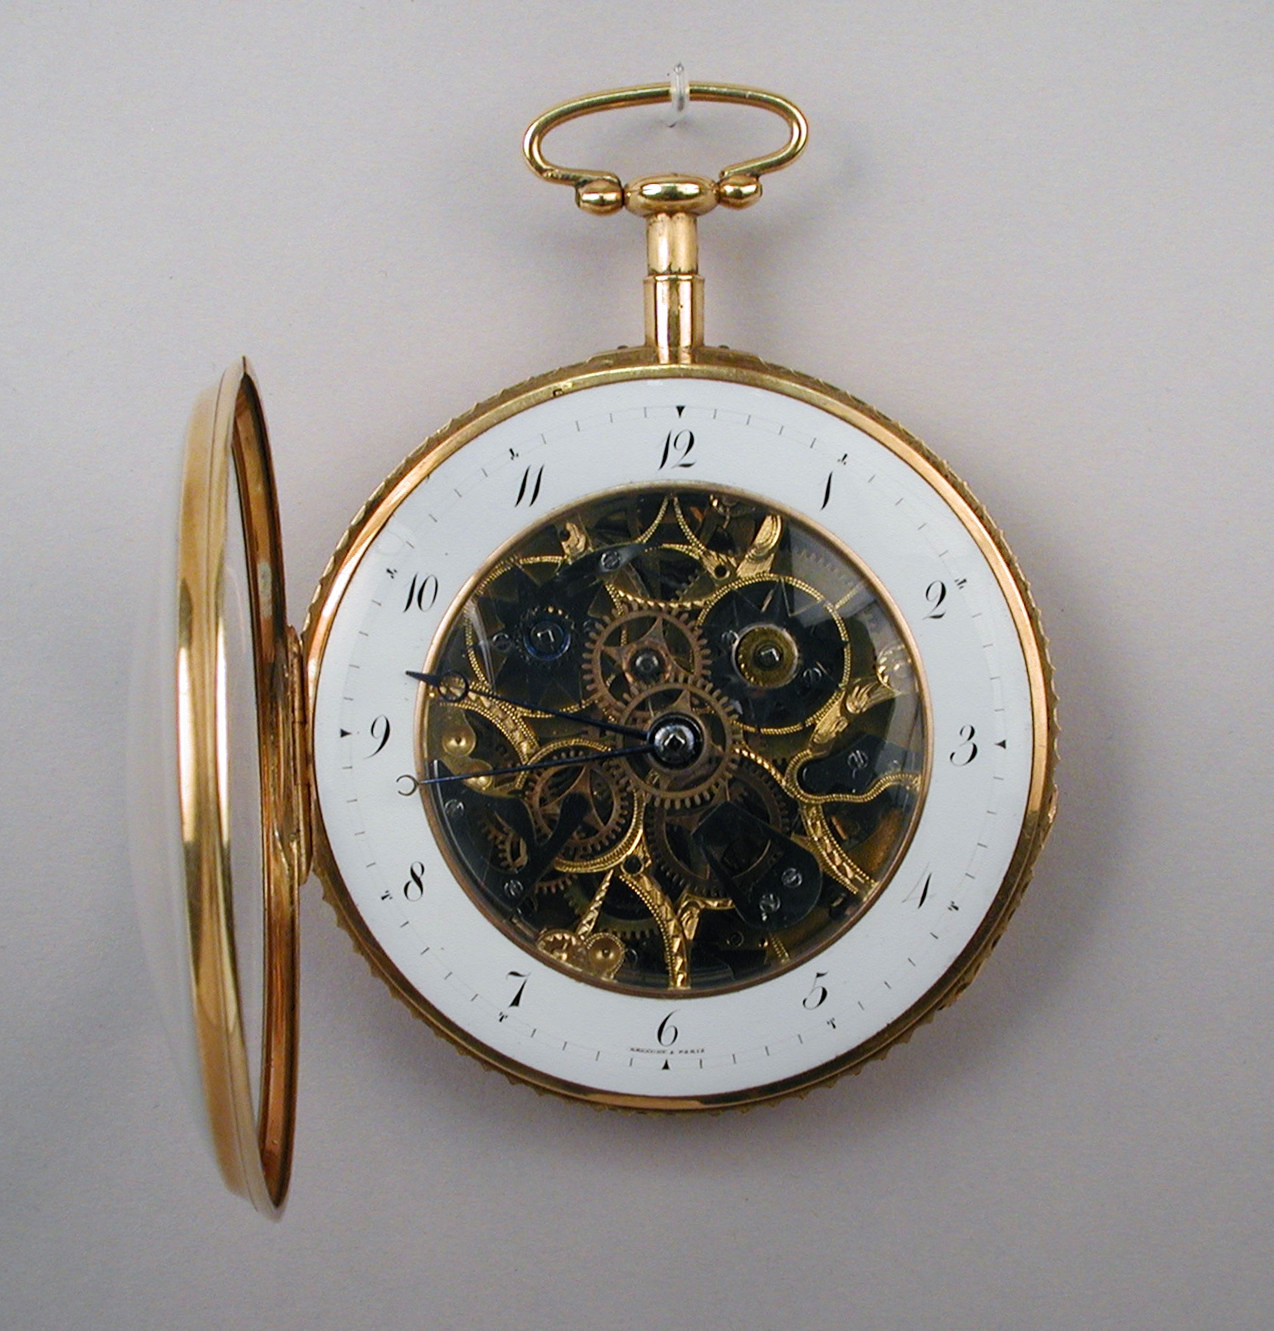 1810. Watch. Swiss, La Chaux-de-Fonds. Gold, glass. metmuseum